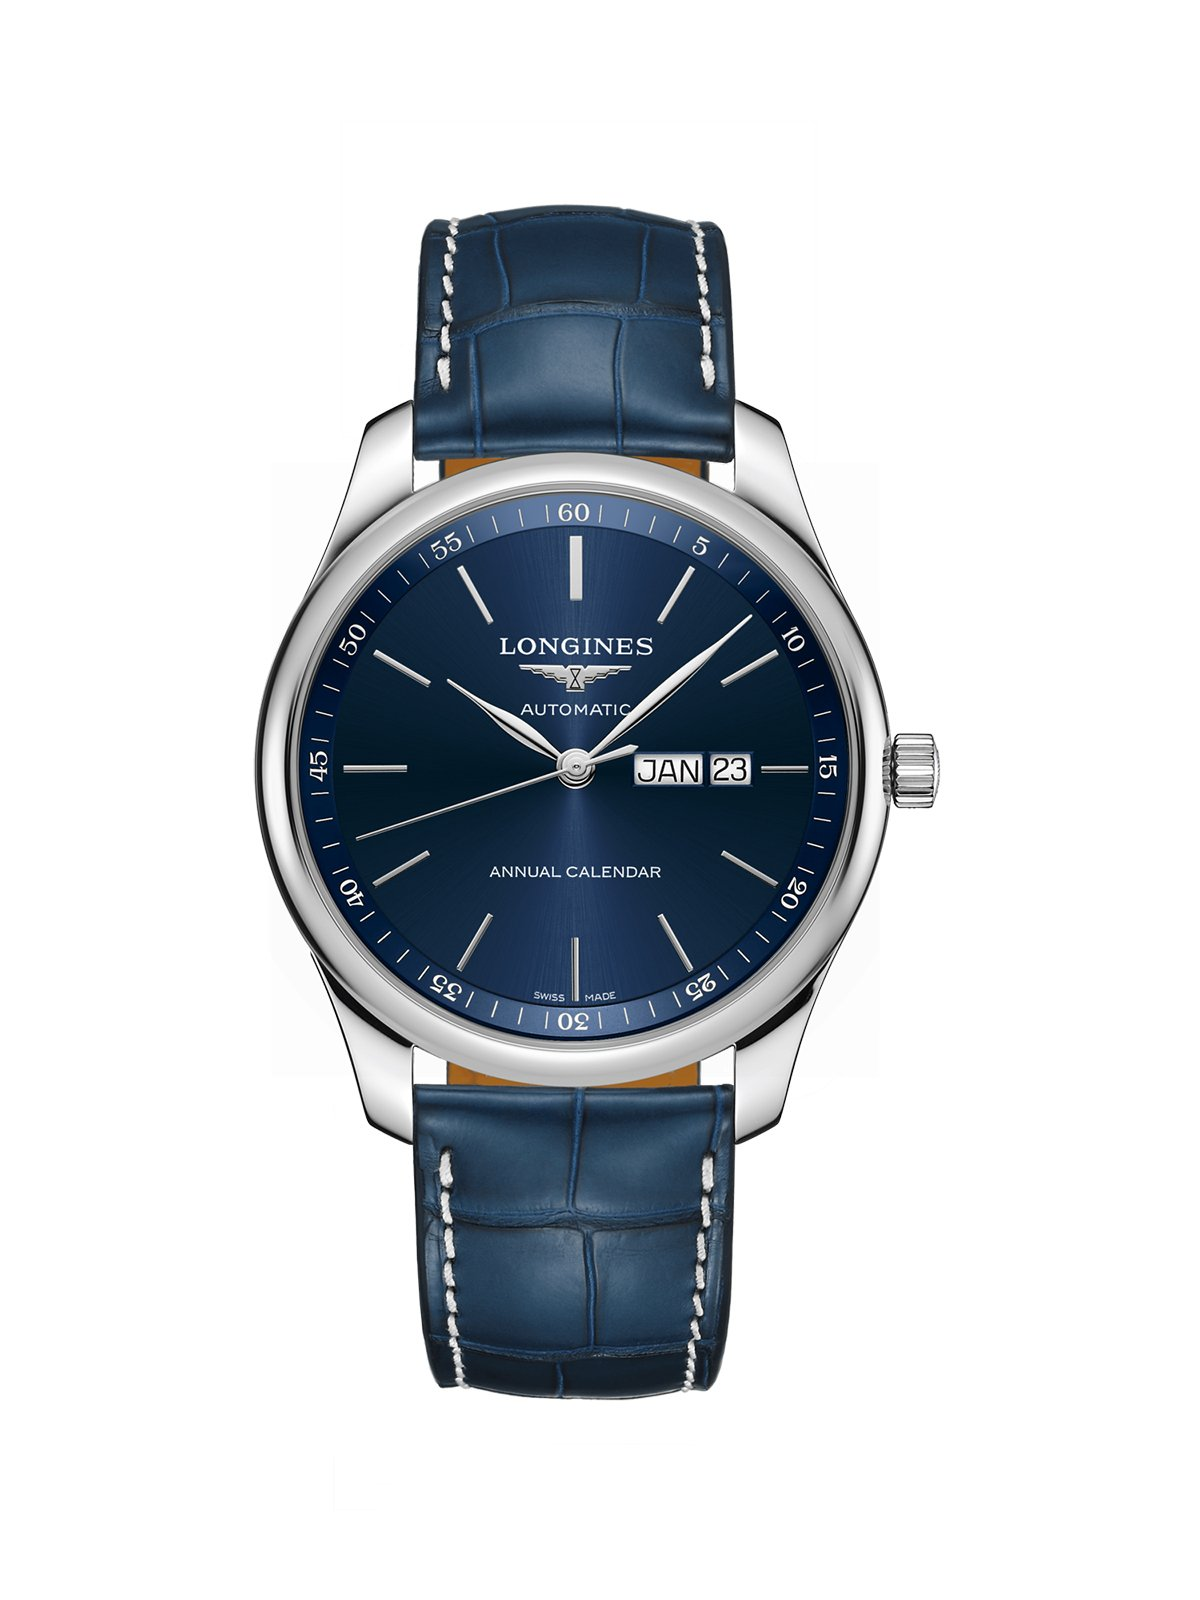 Longines Master Collection Annual Calendar Gents Watch 42mm L2.920.4.92.0